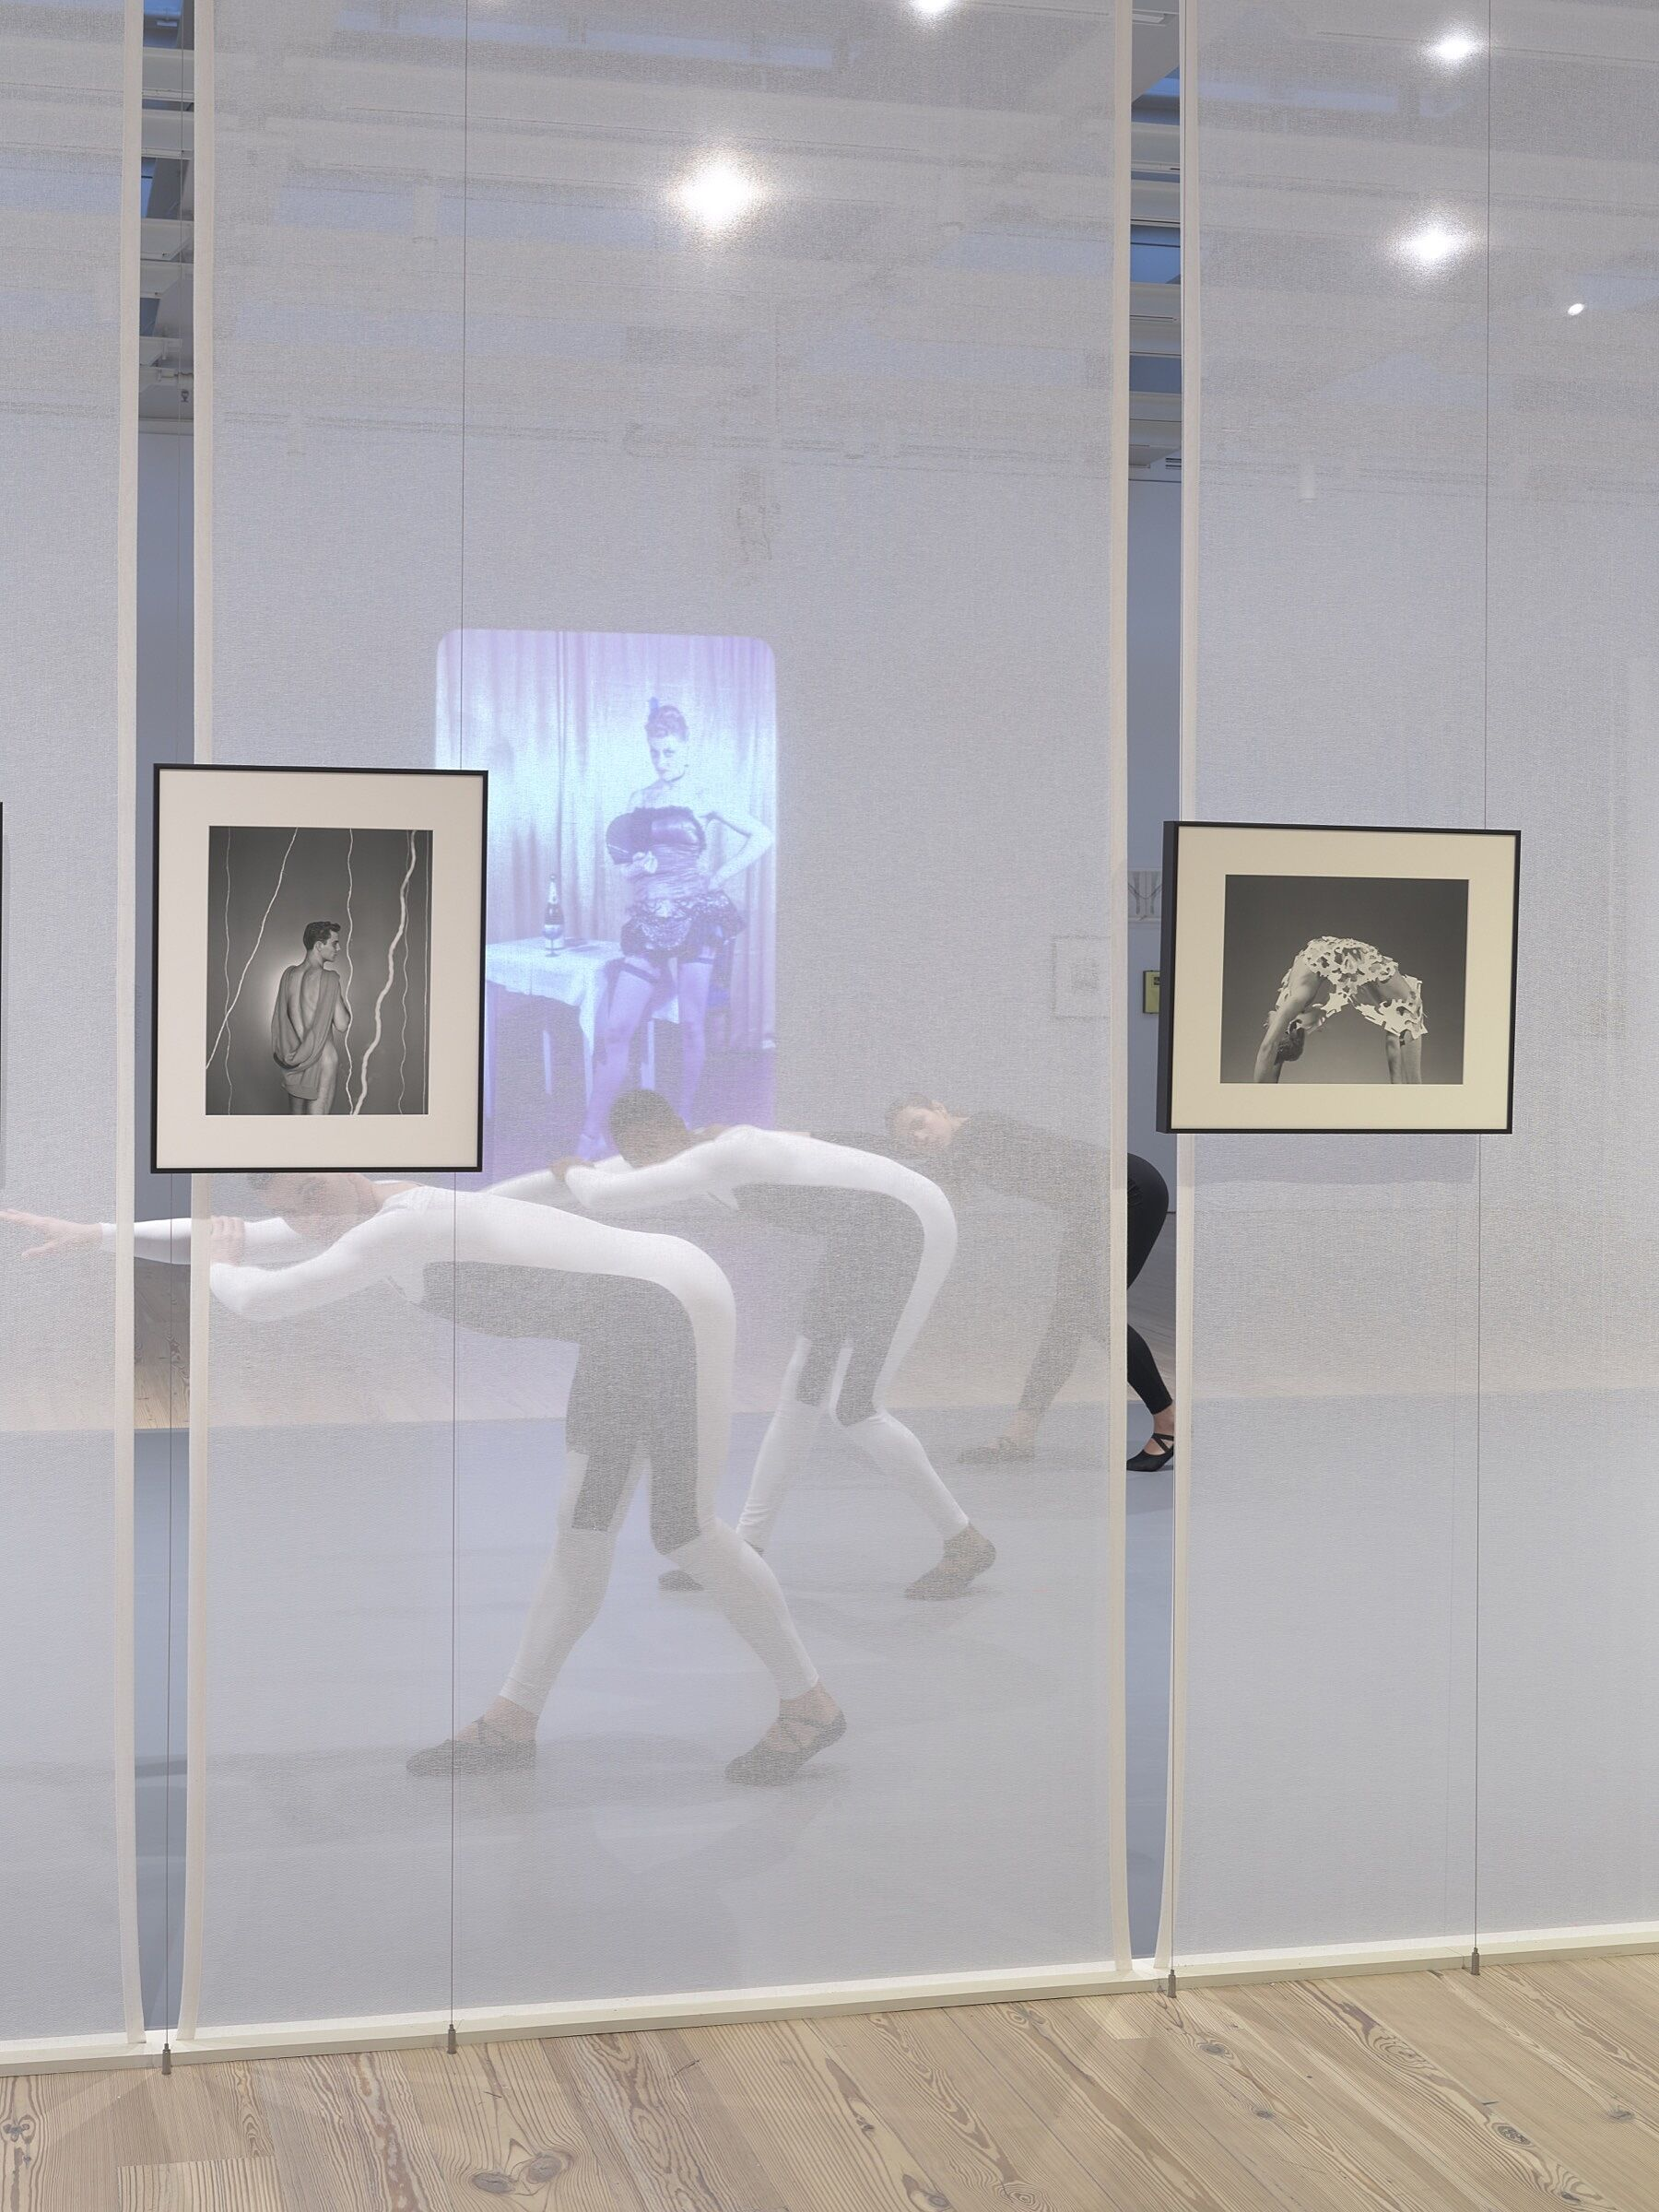 Three dancers perform behind a screen in a gallery space full of photos and video.